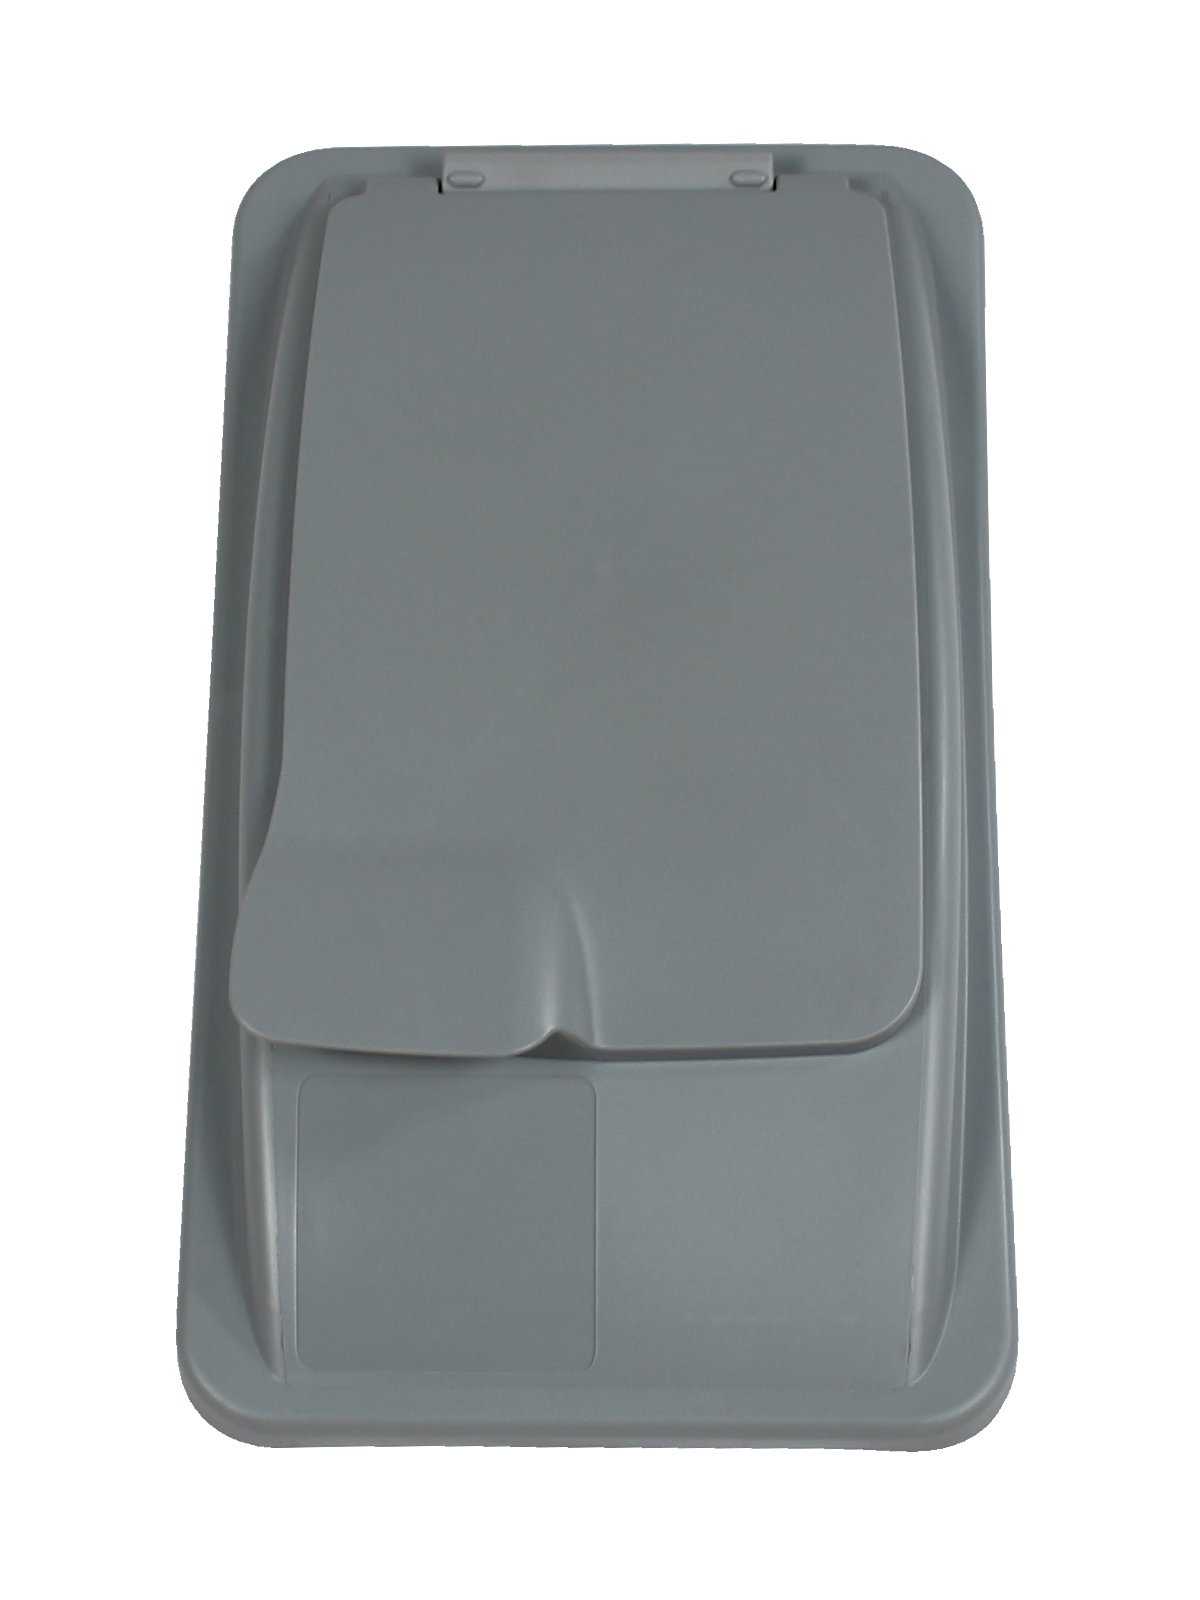 WASTE WATCHER® LIFT LID - SOLID OPENING